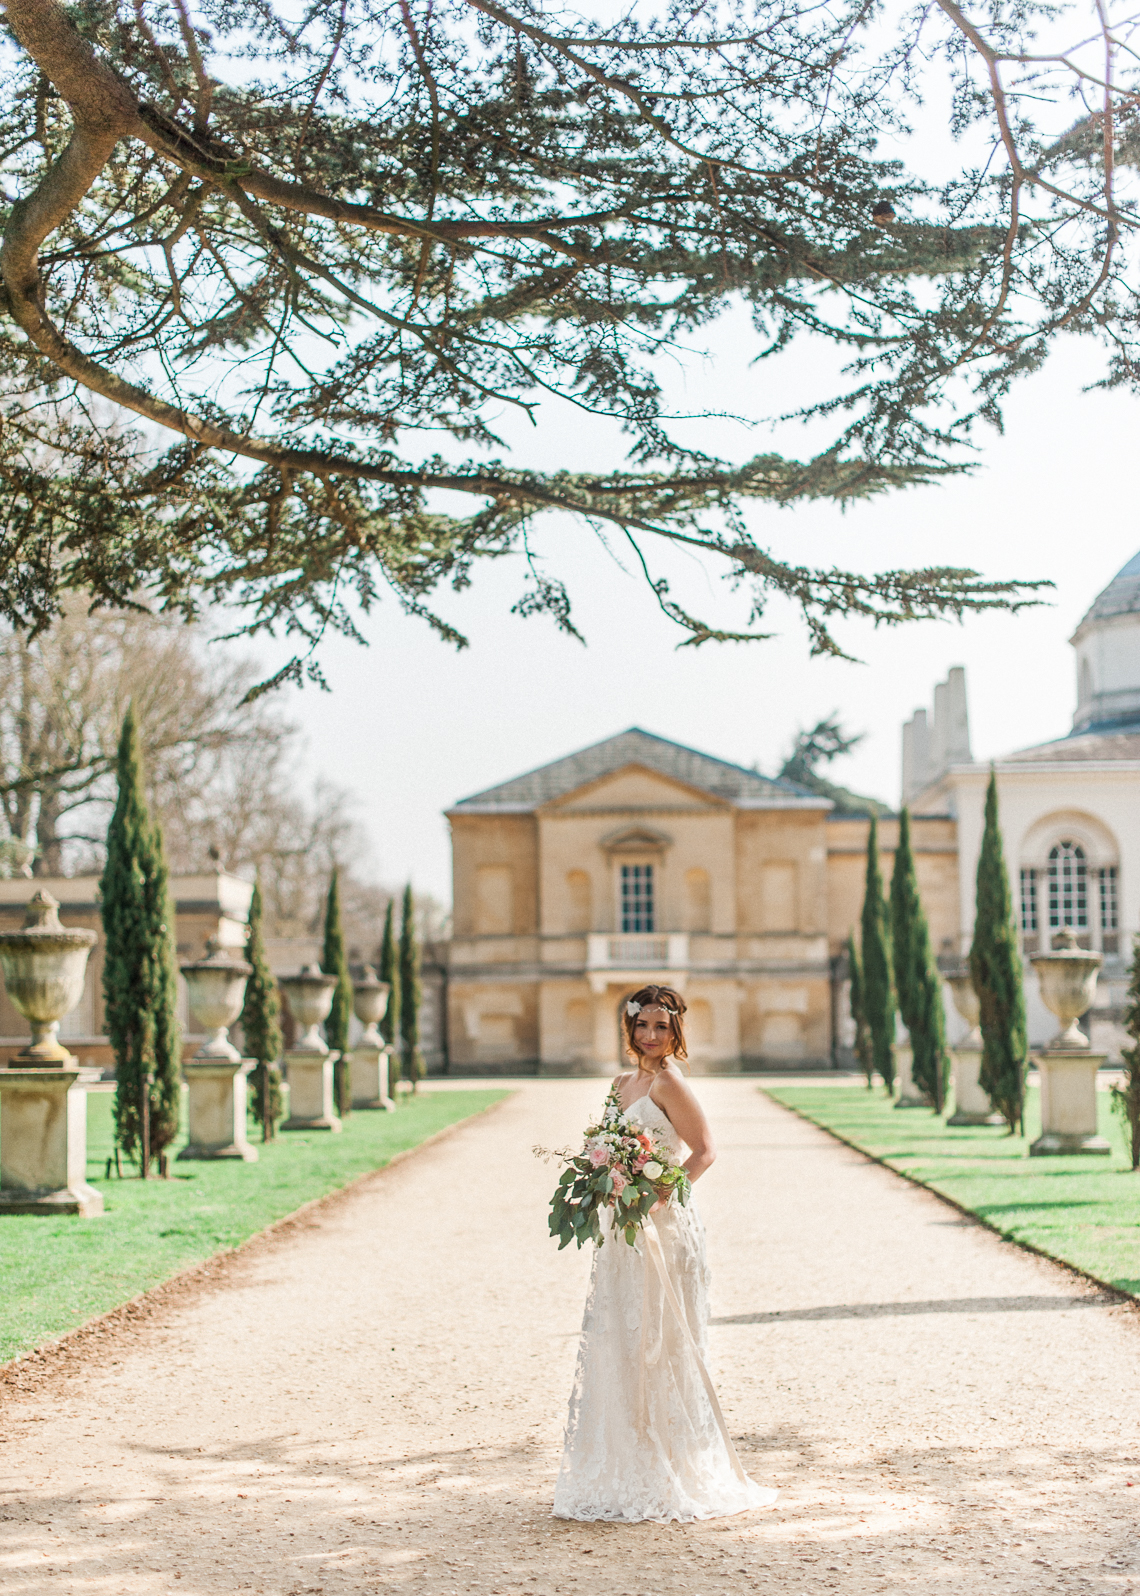 You Can Tour The Beautiful House Gardens More At Chiswick Wedding Showcase On Saay April 22nd From 11am 4pm Pre Register Here